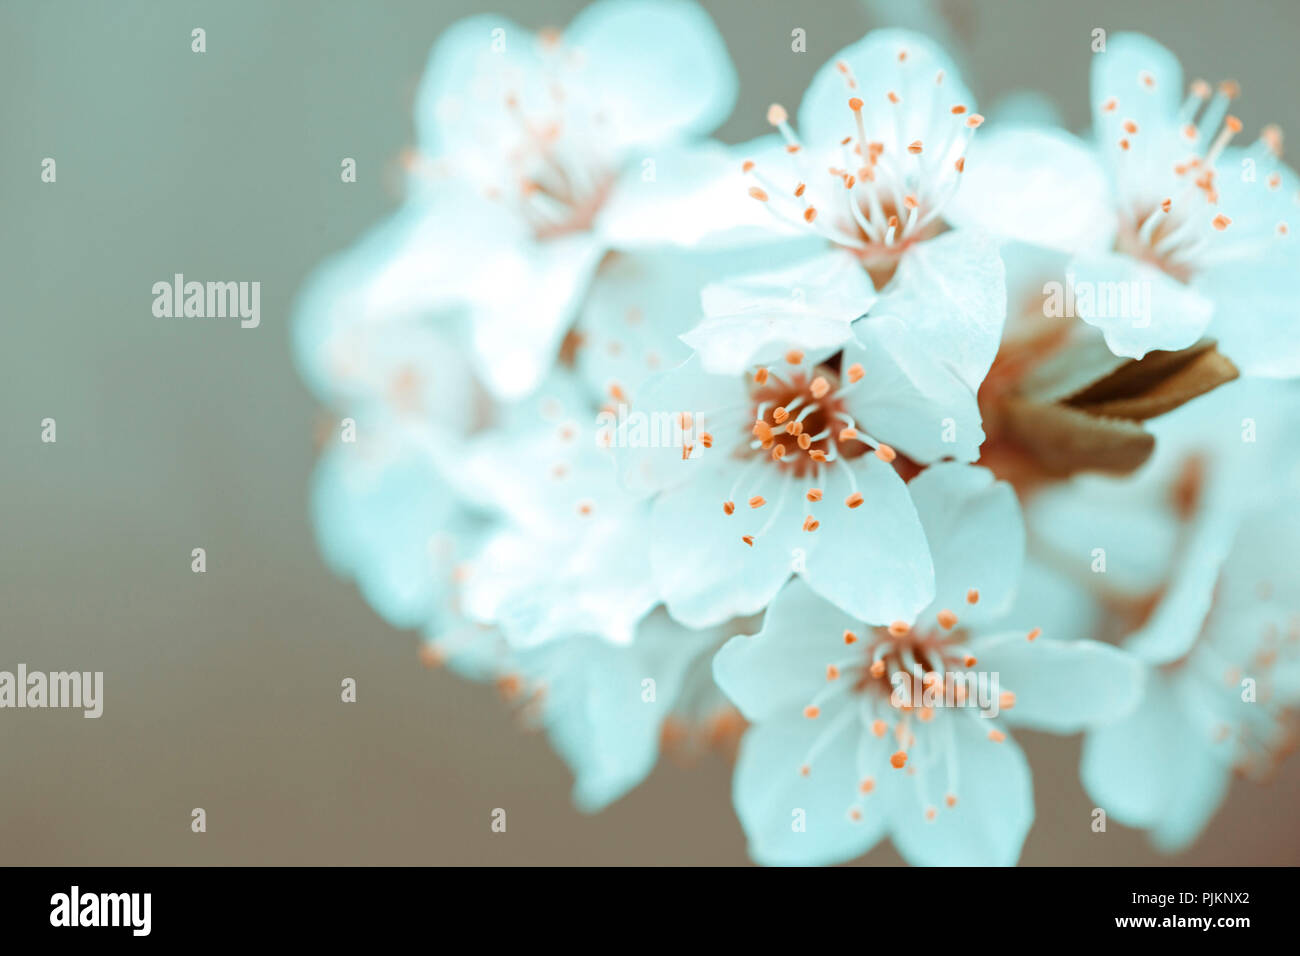 Delicate white spring blossoms on a fruit tree, - Stock Image